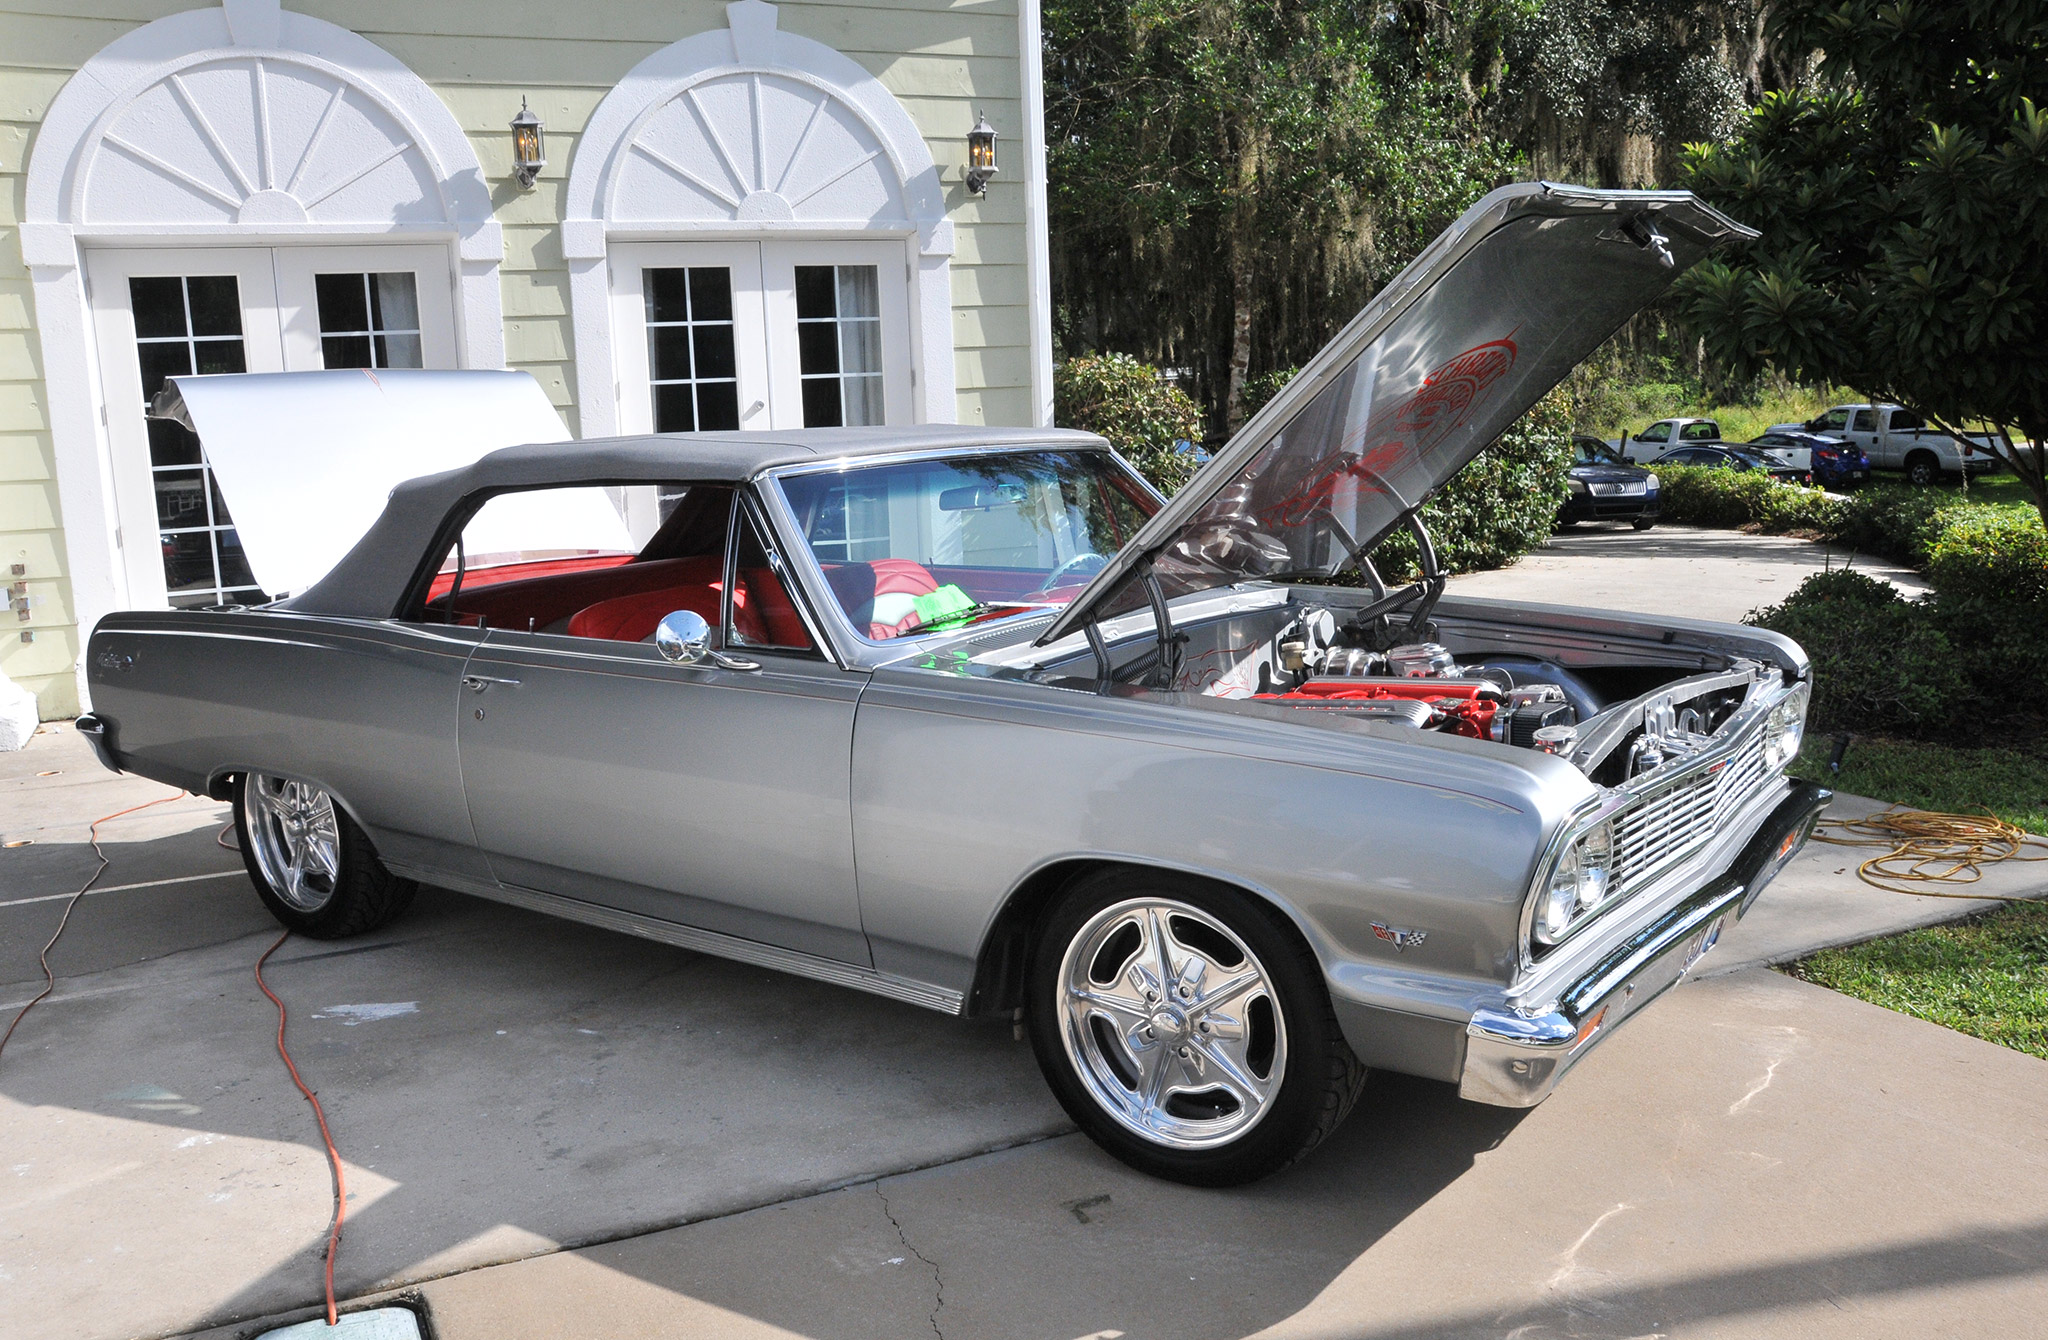 Prominently displayed on the stage was this silver '64 Malibu convertible owned by professional upholsterer Ed Schreck. It's powered by an LS1 with a six-speed trans.